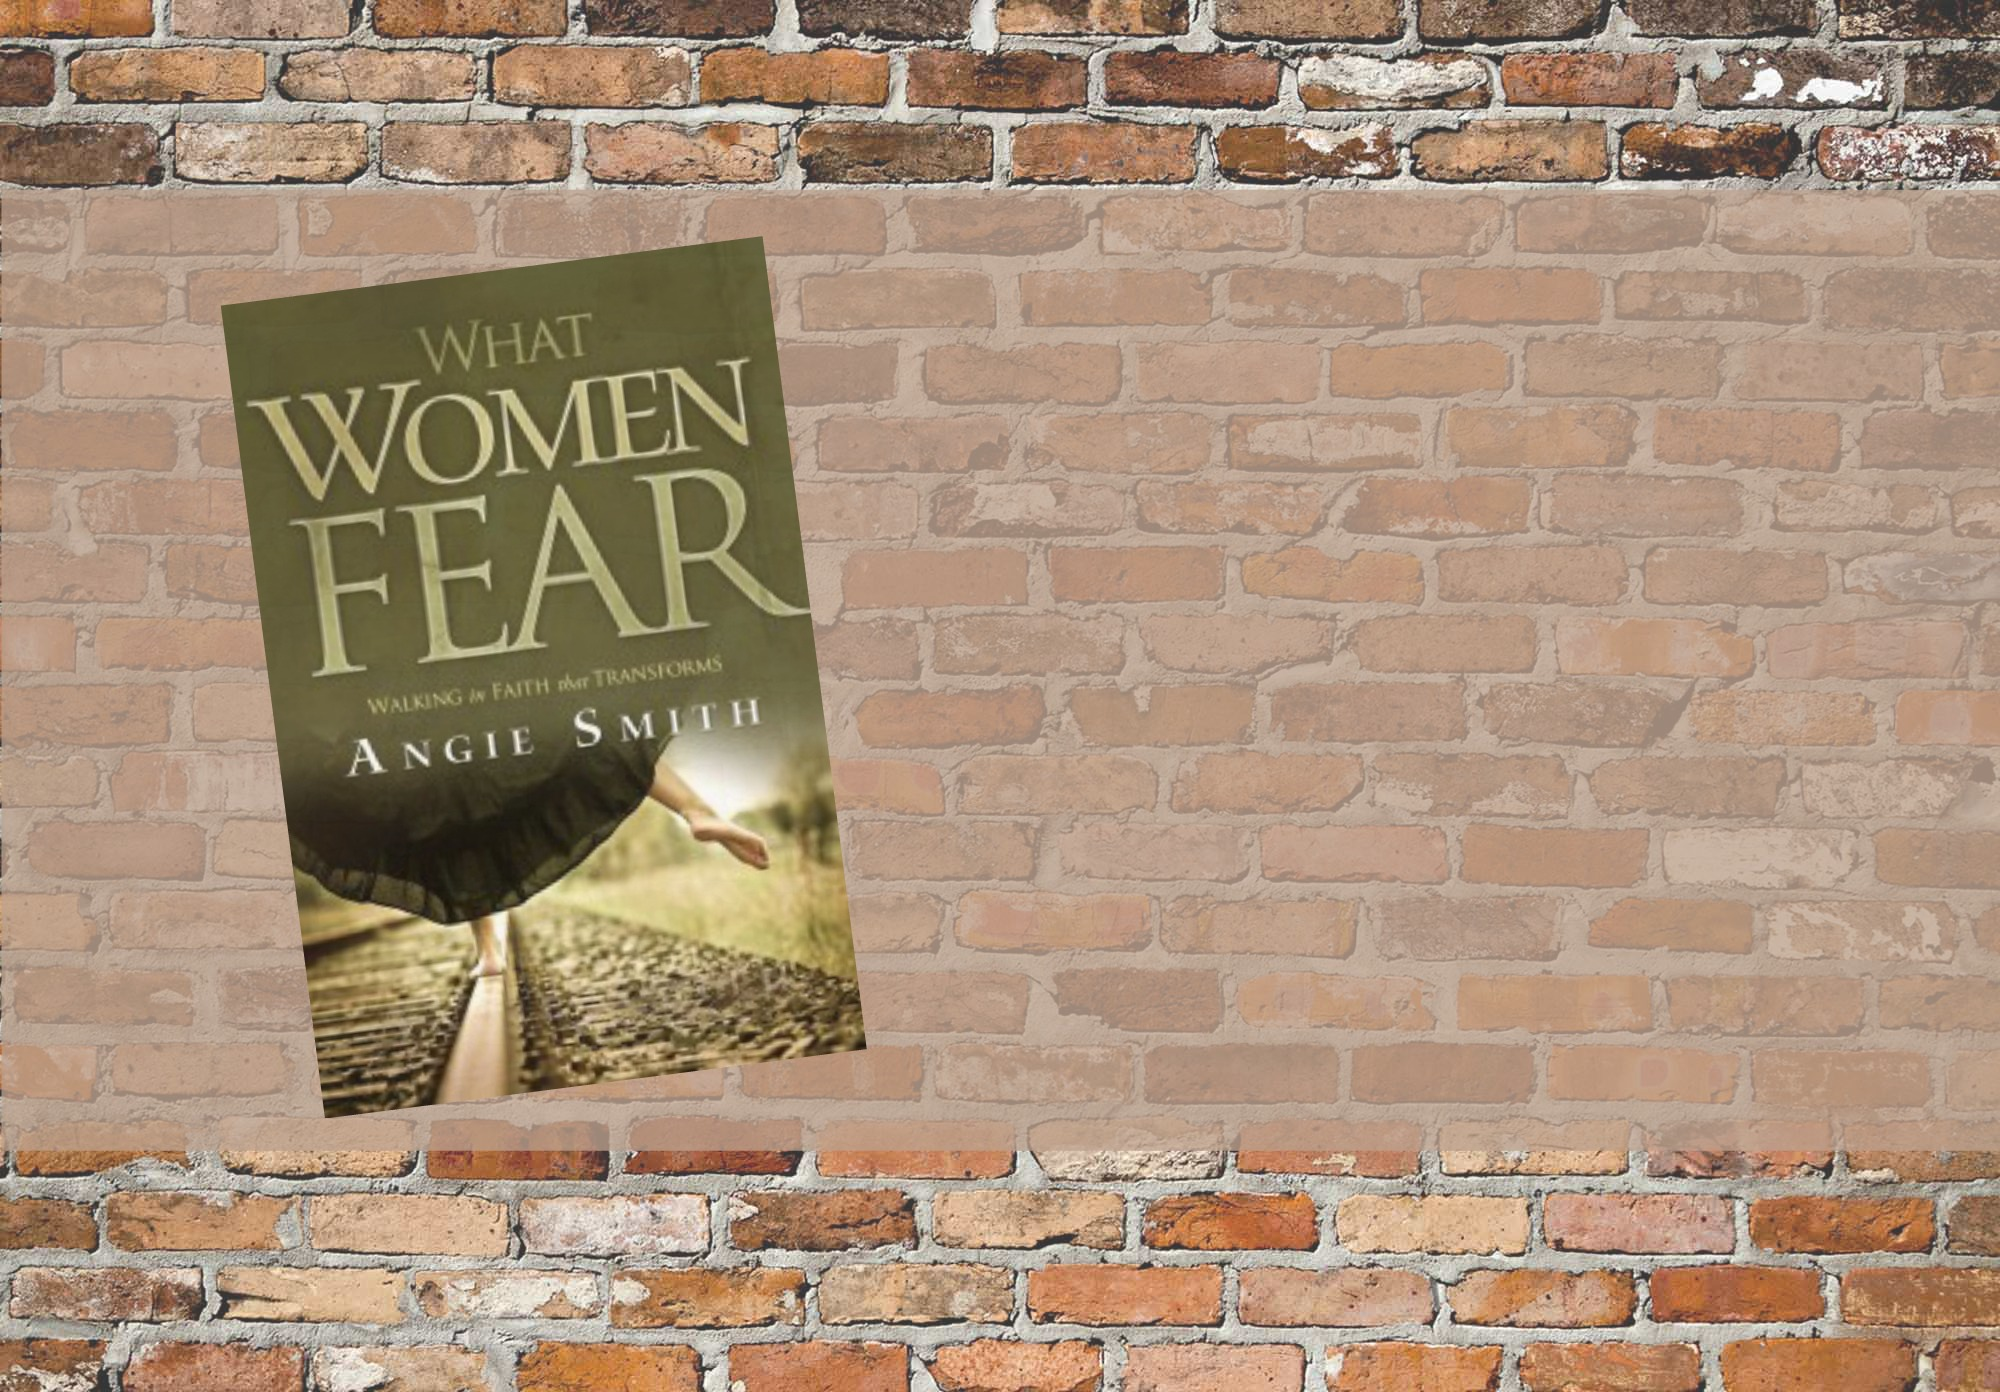 What Women Fear:  Week 5